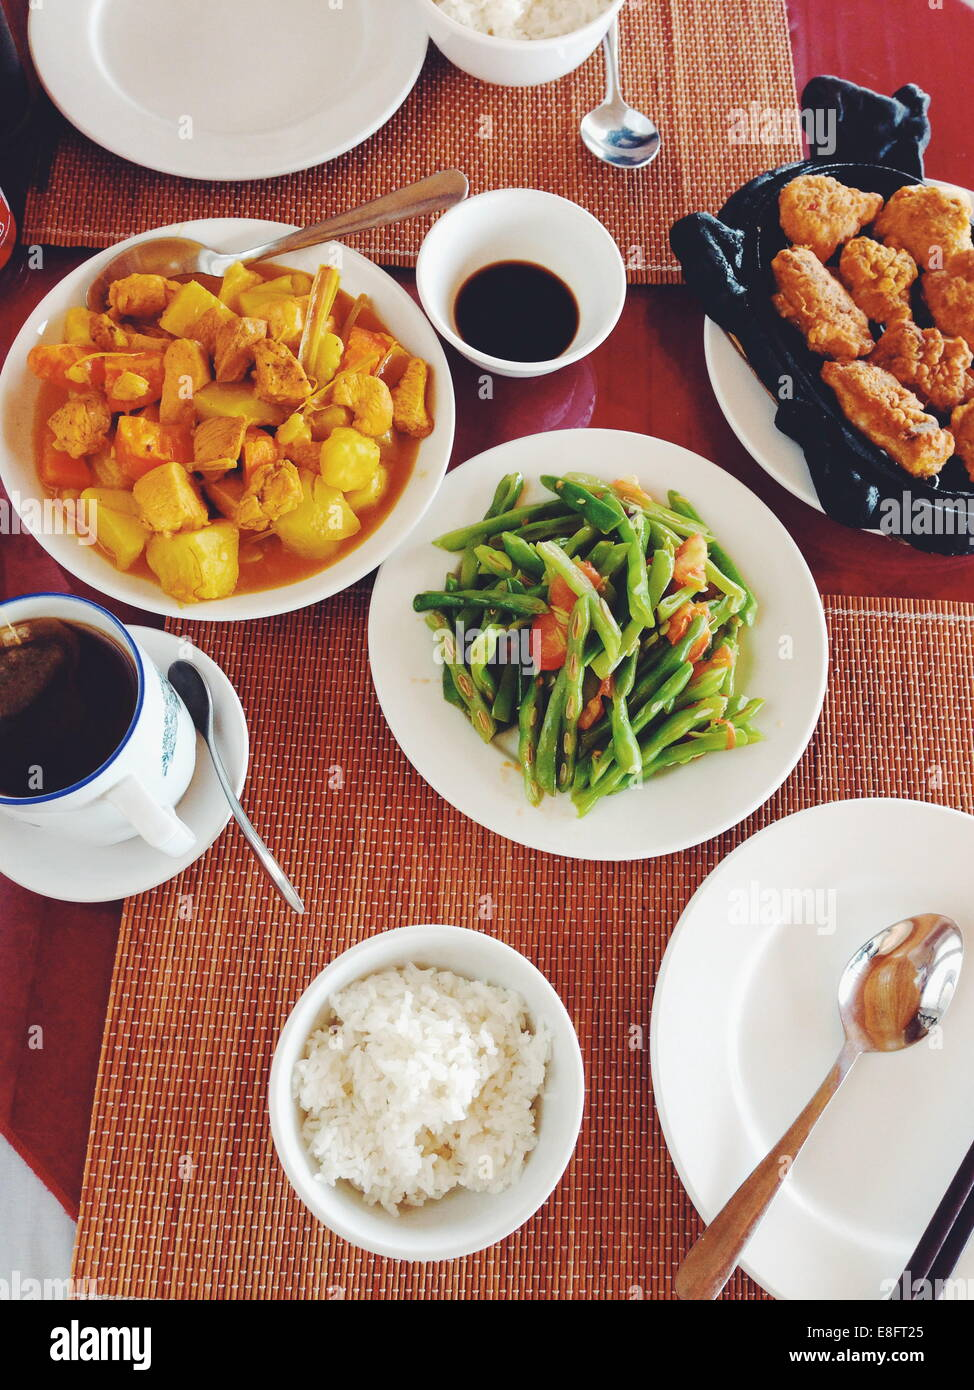 Vietnam, Lao Cai Province, Sa Pa, Local dishes served in hotel - Stock Image